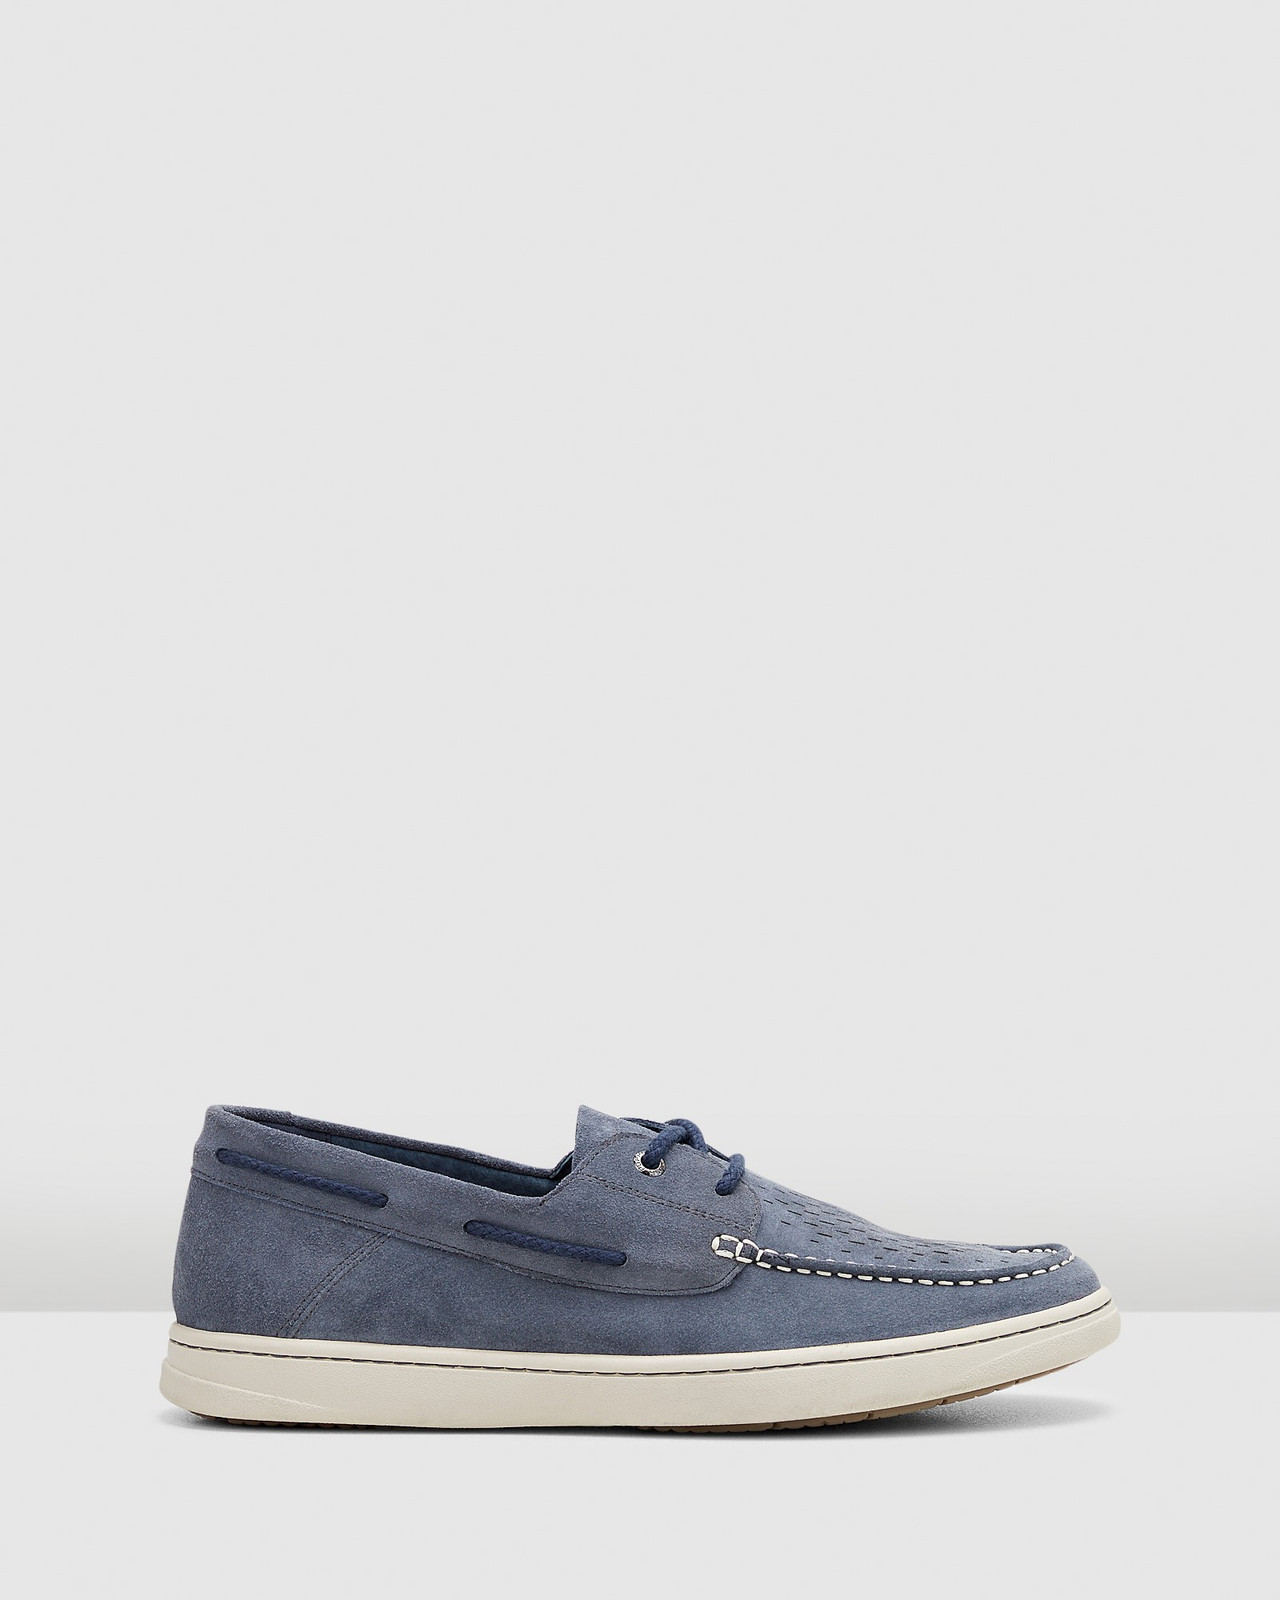 Hush Puppies  TODD Navy Suede